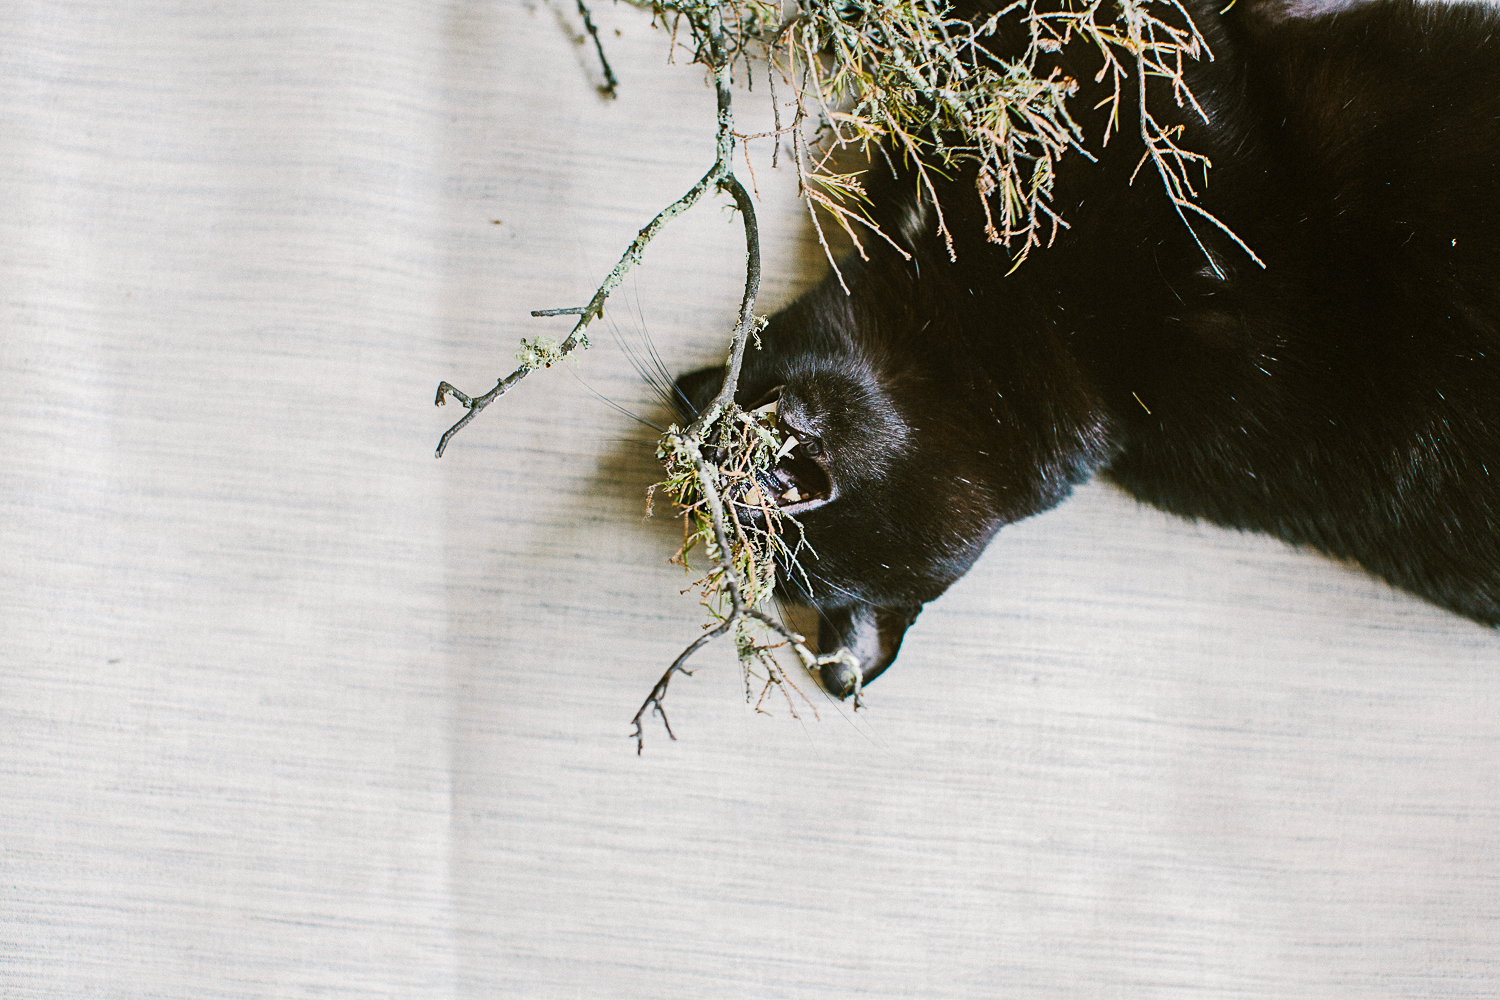 twoguineapigs_photography_ruby_slippers_cat_and_floral_series_1500.jpg